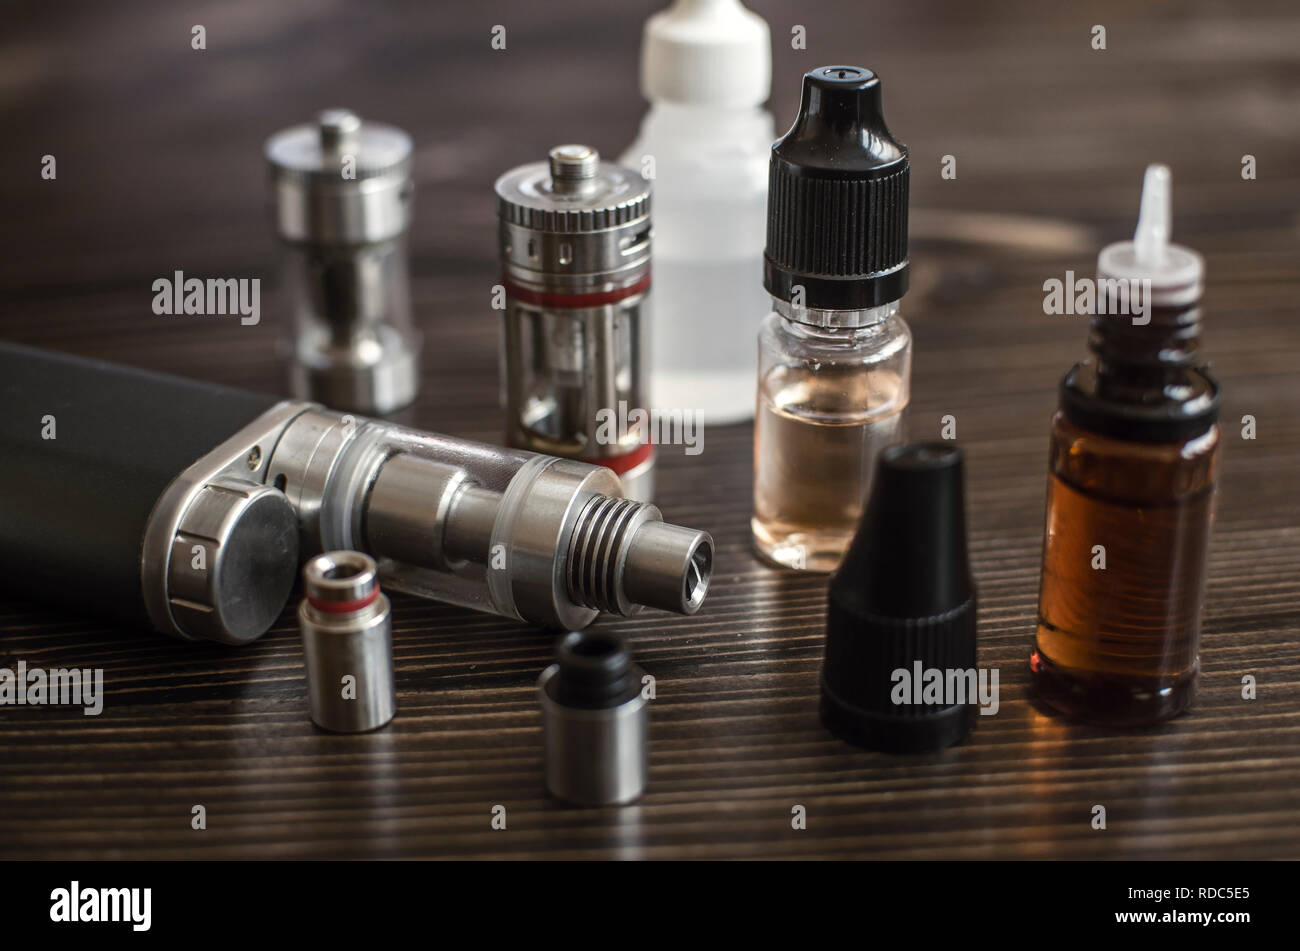 Kit for healthy smoking on wooden background, e-cigarette - Stock Image